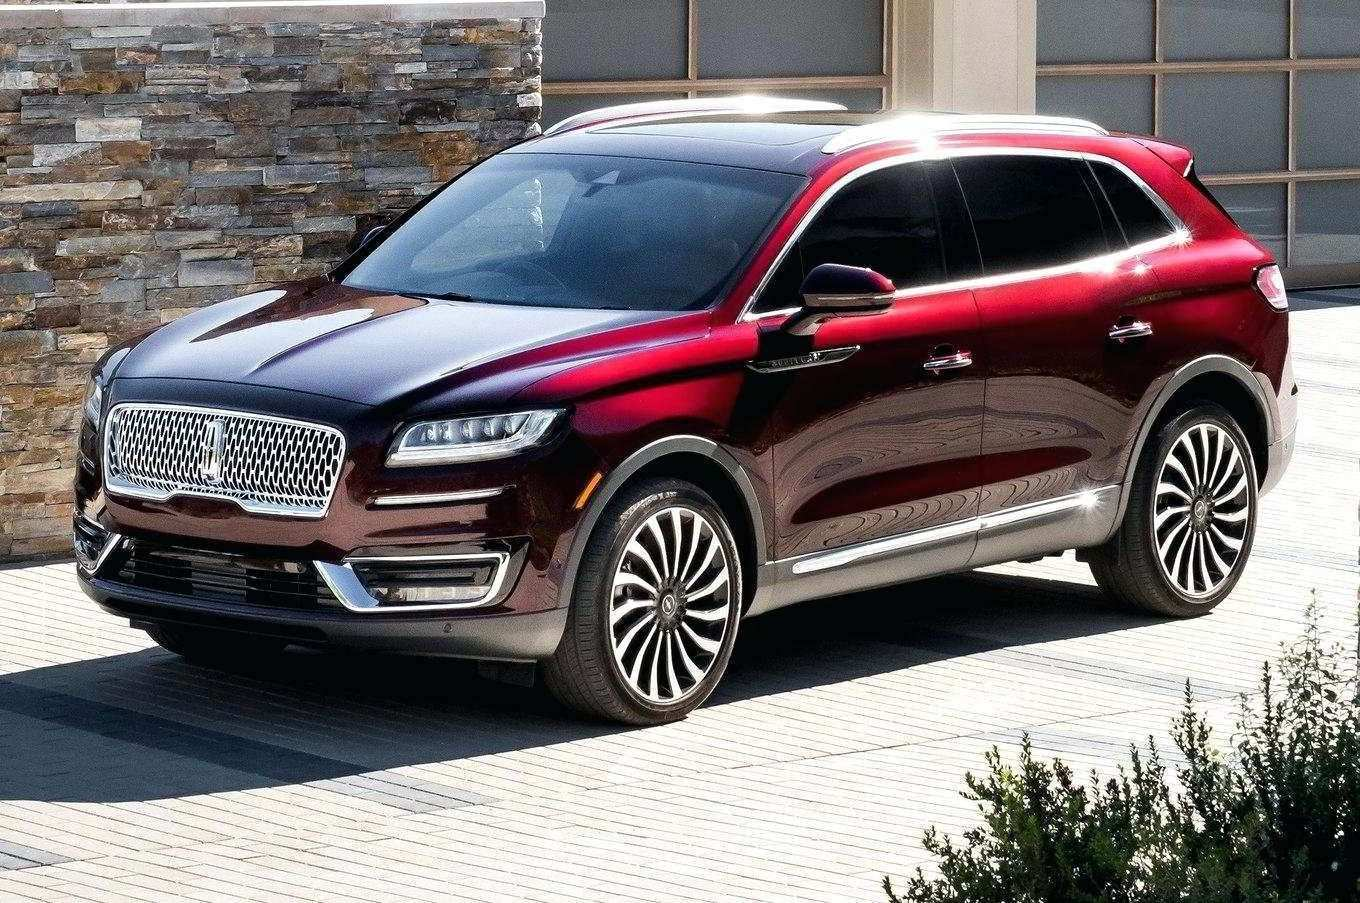 51 All New 2019 Spy Shots Lincoln Mkz Sedan Release Date